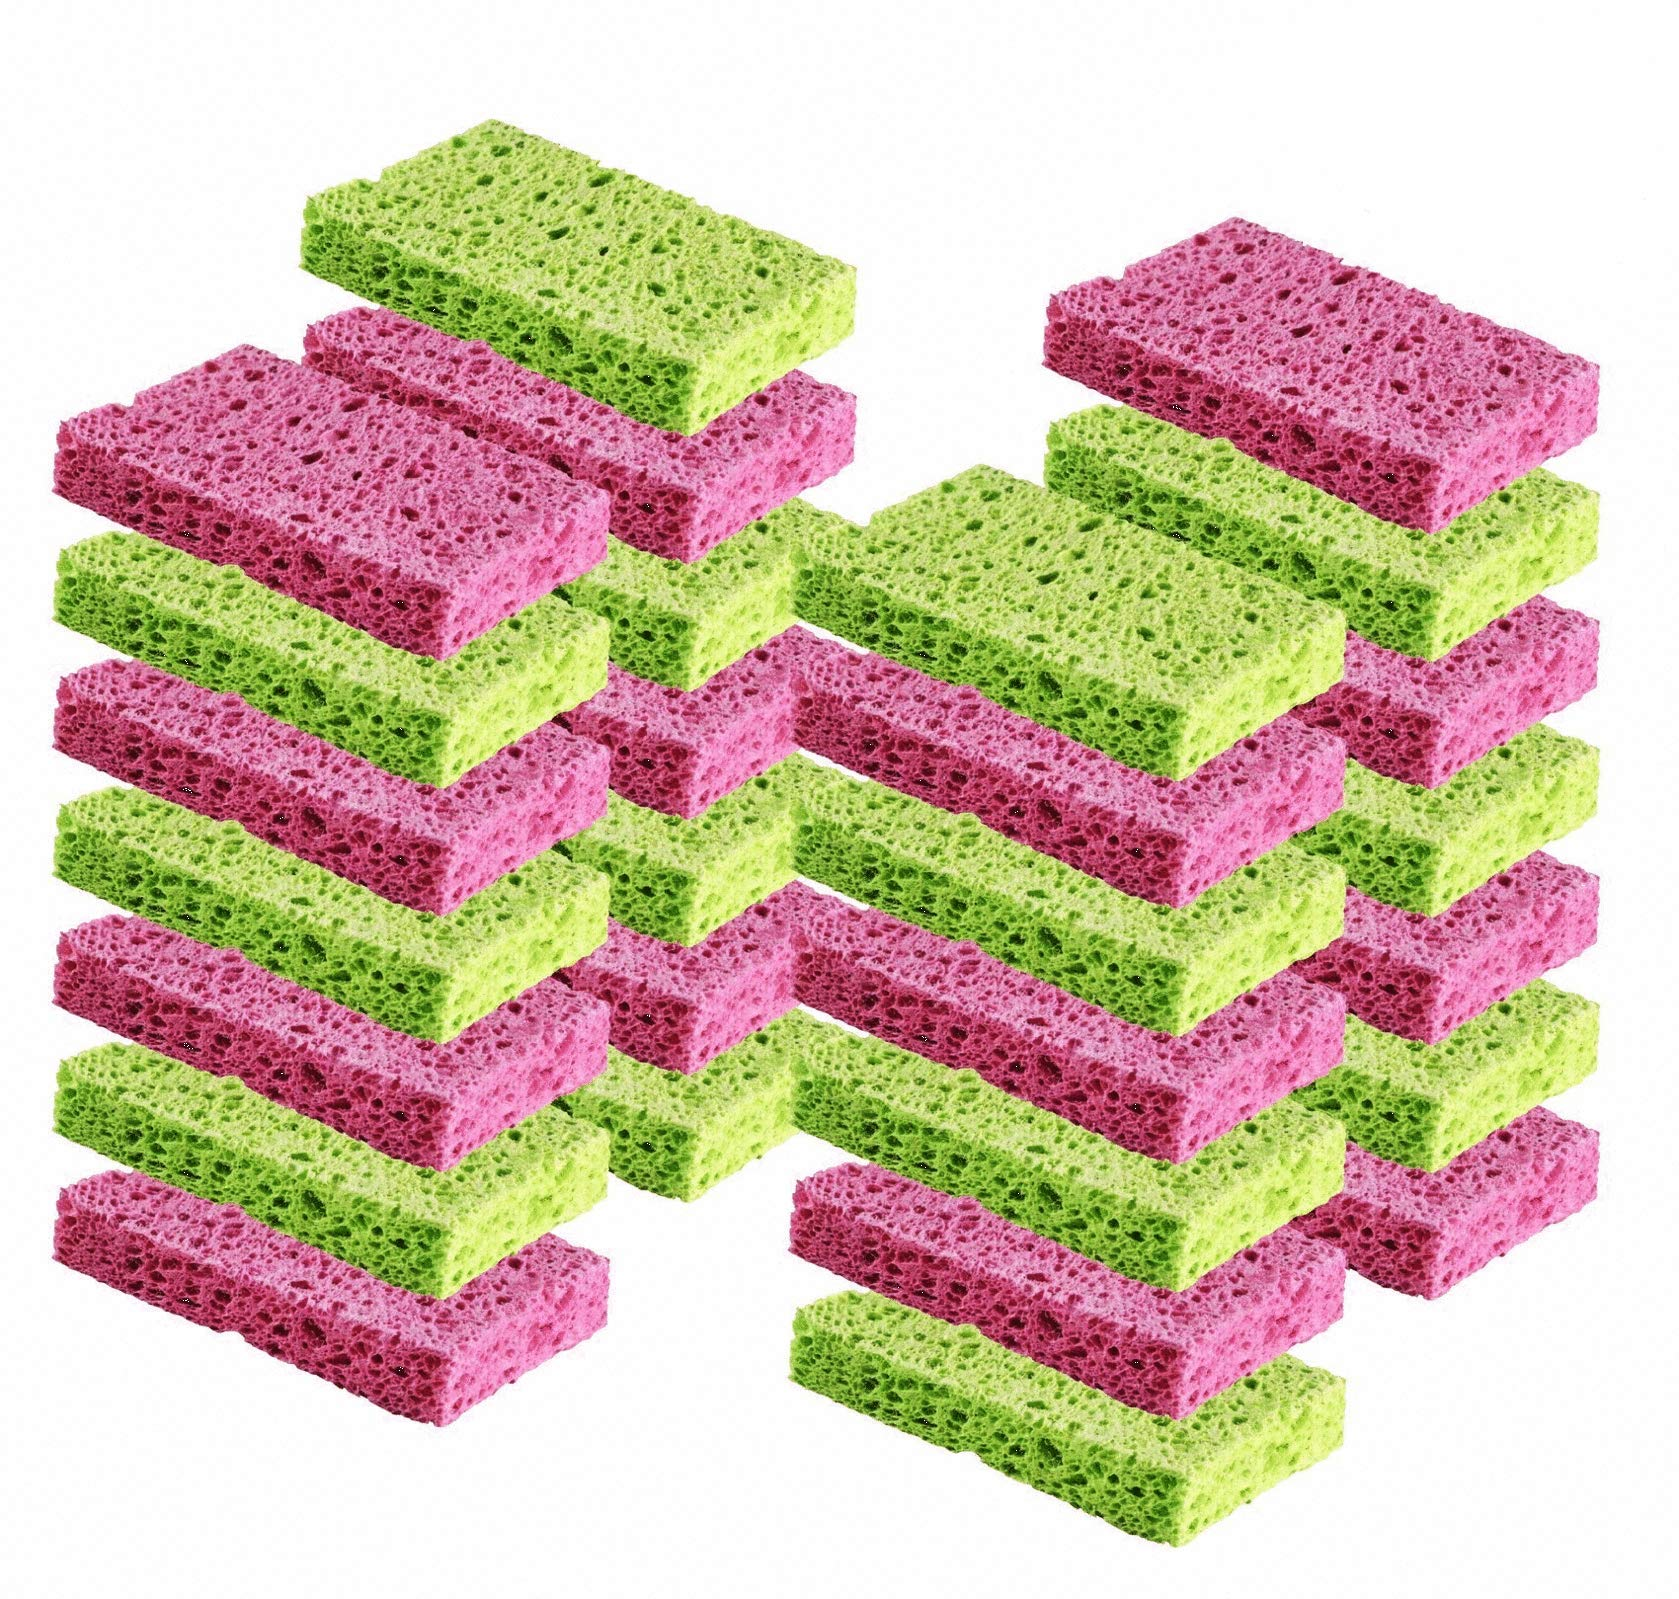 Cleaning Scrub Sponge by Scrub-it - Scrubbing Dish Sponges Use for Kitchens, Bathroom & More - 24 Pack -Colors May Vary- by Scrub-It